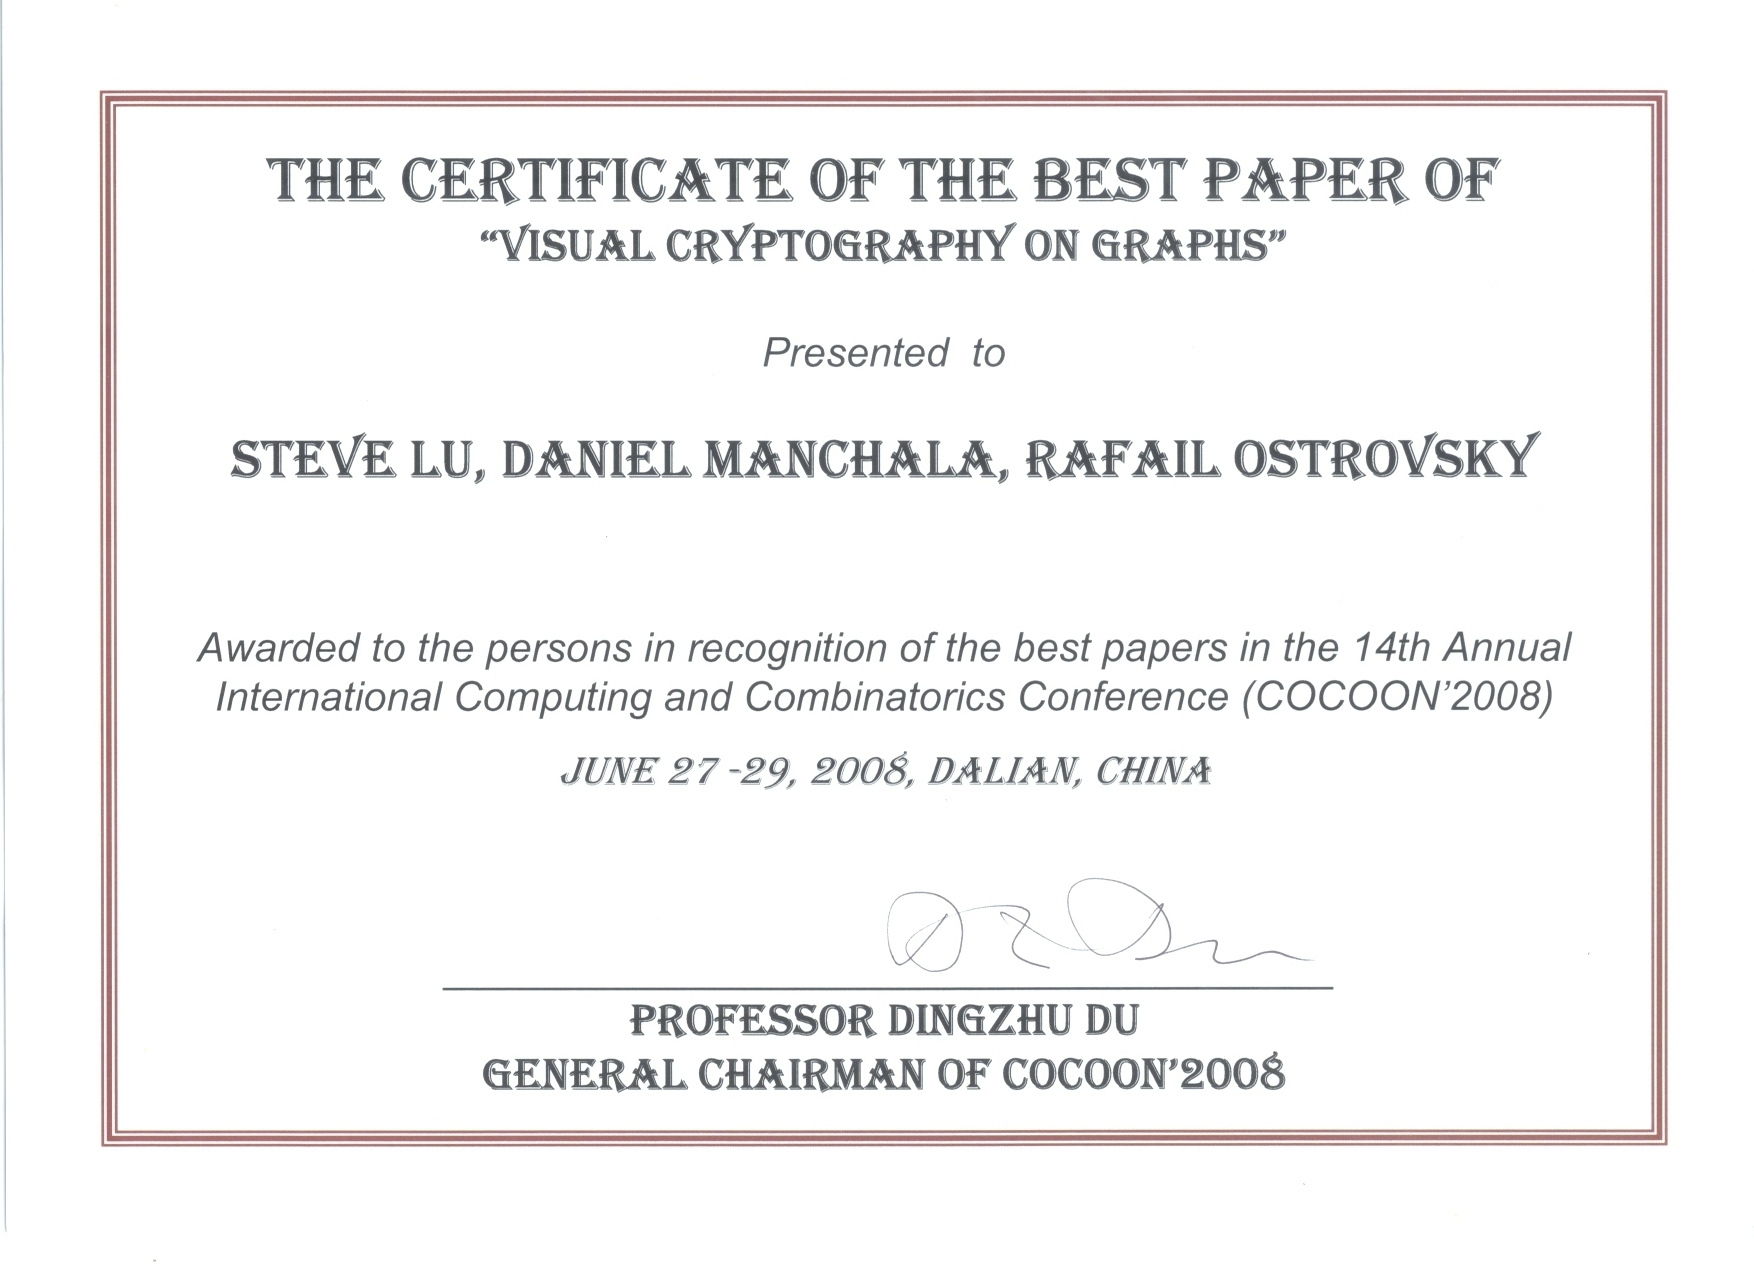 COCCON 2008 BEST PAPER AWARD